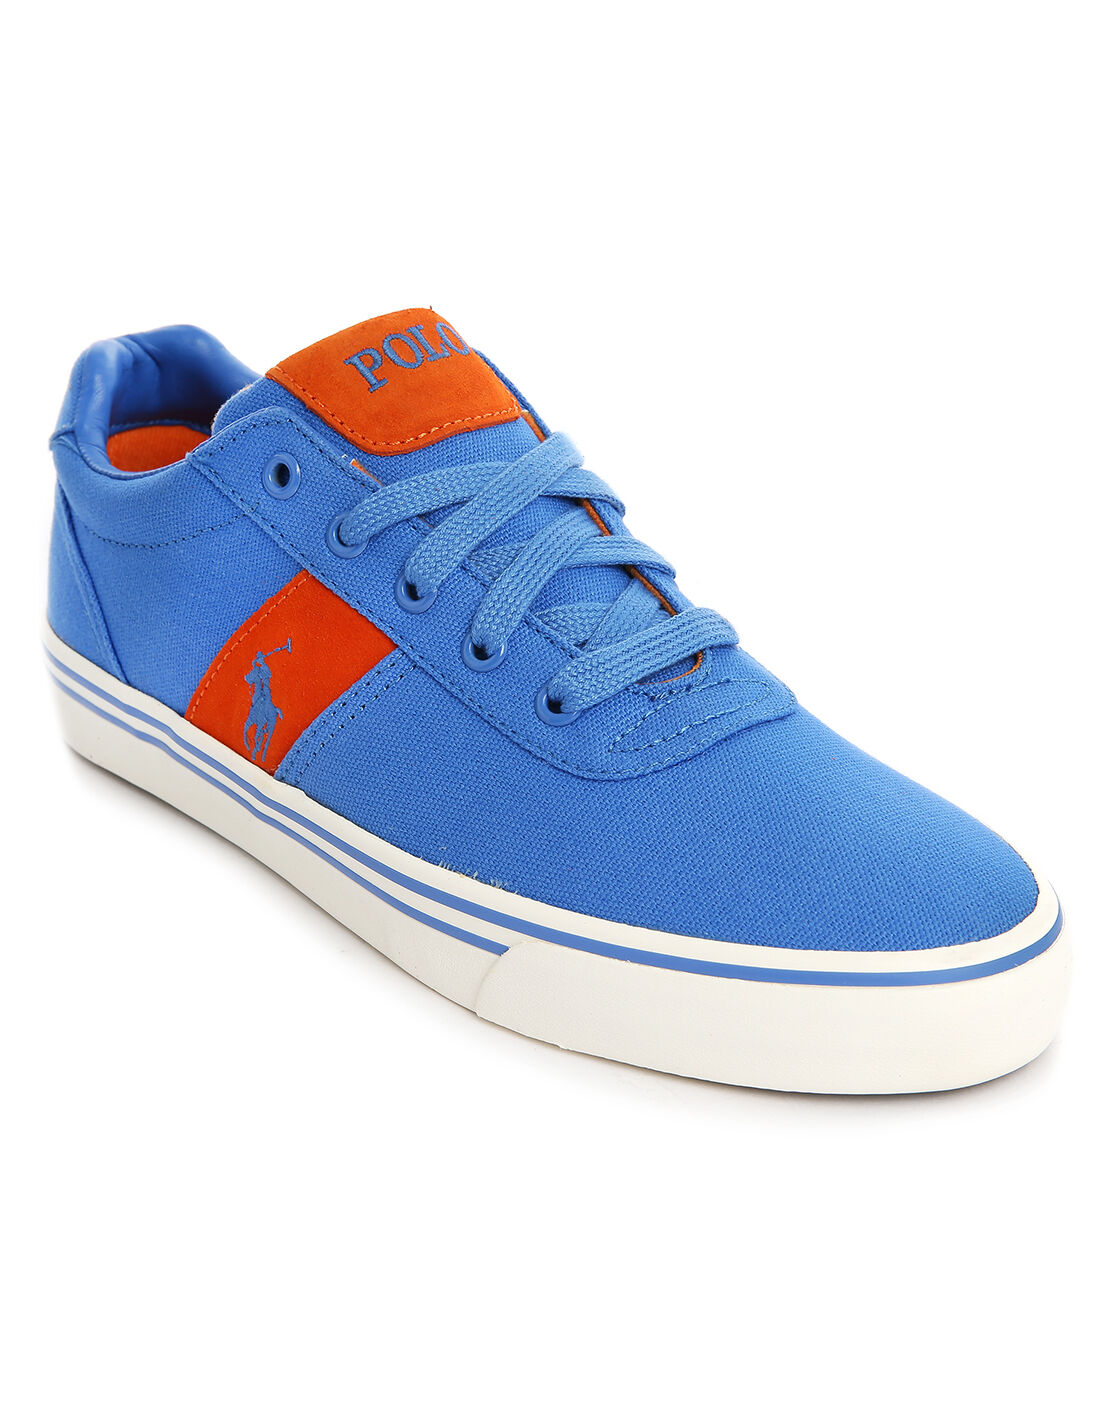 NEW POLO RALPH LAUREN HANFORD-NE COLBY BLUE SNEAKERS TRAINERS SIZE UK 6 / 7 / 8